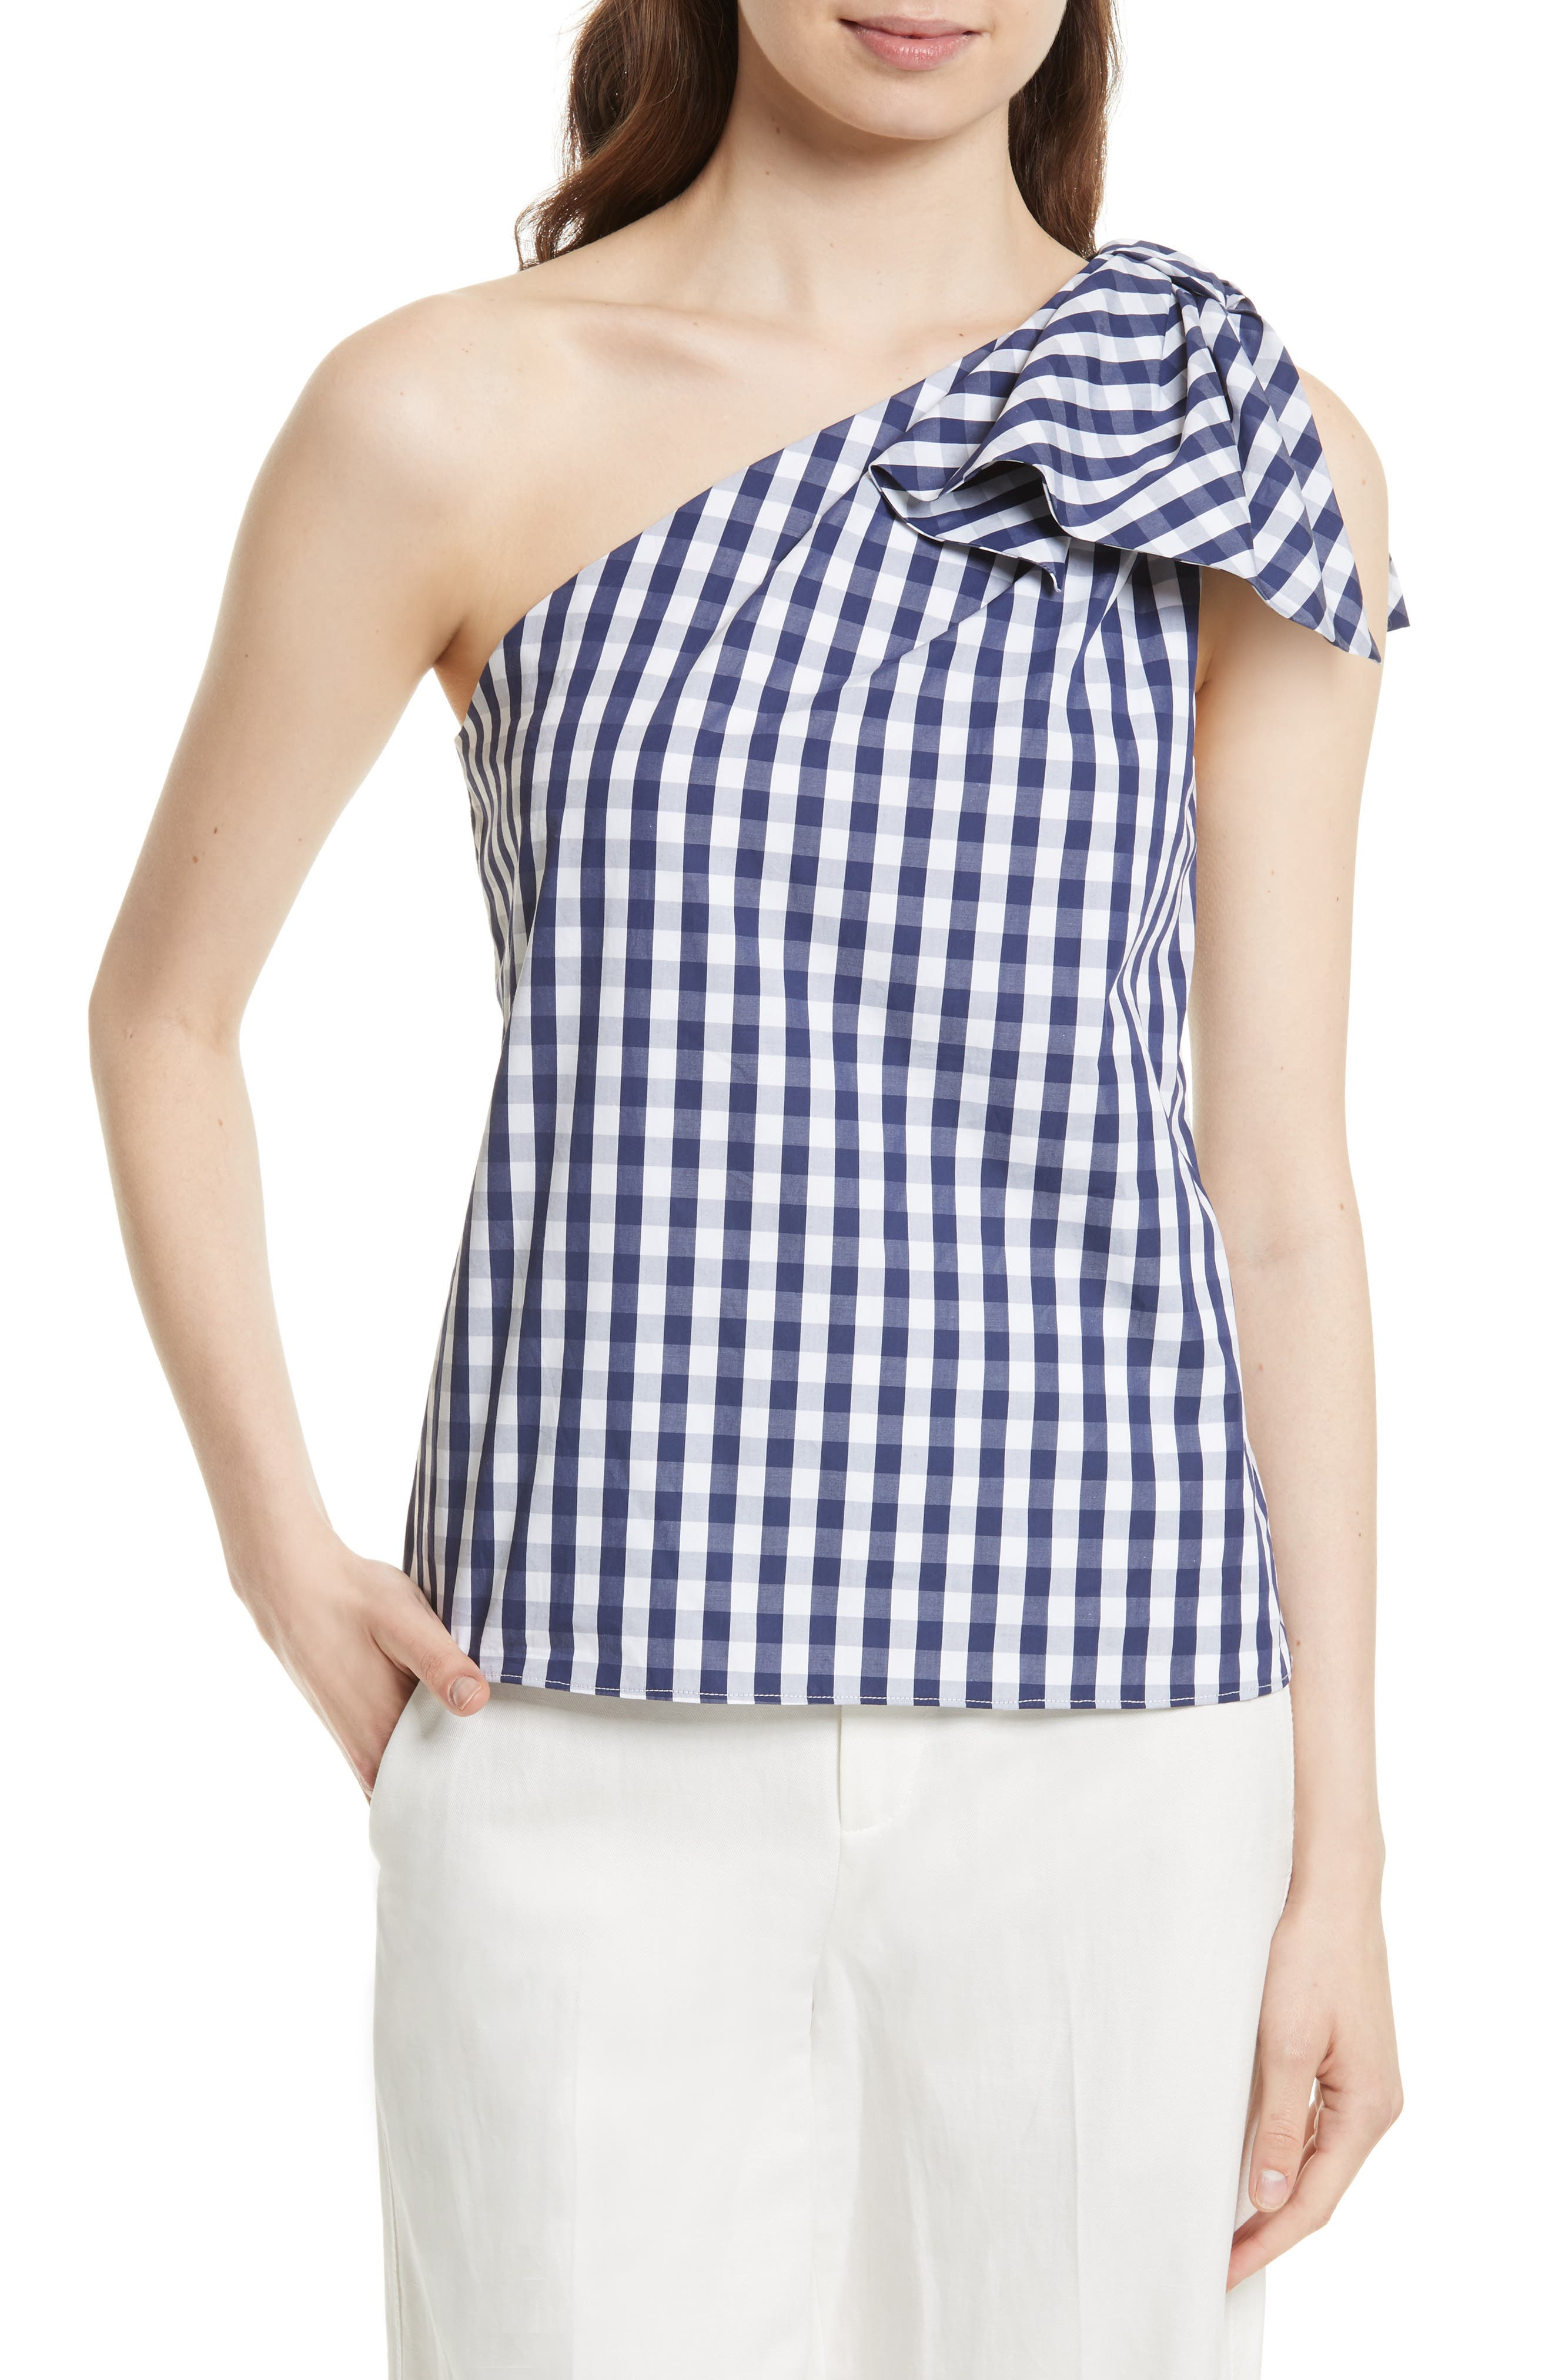 Alternate Image 1 Selected - Milly Cindy One Shoulder Gingham Top